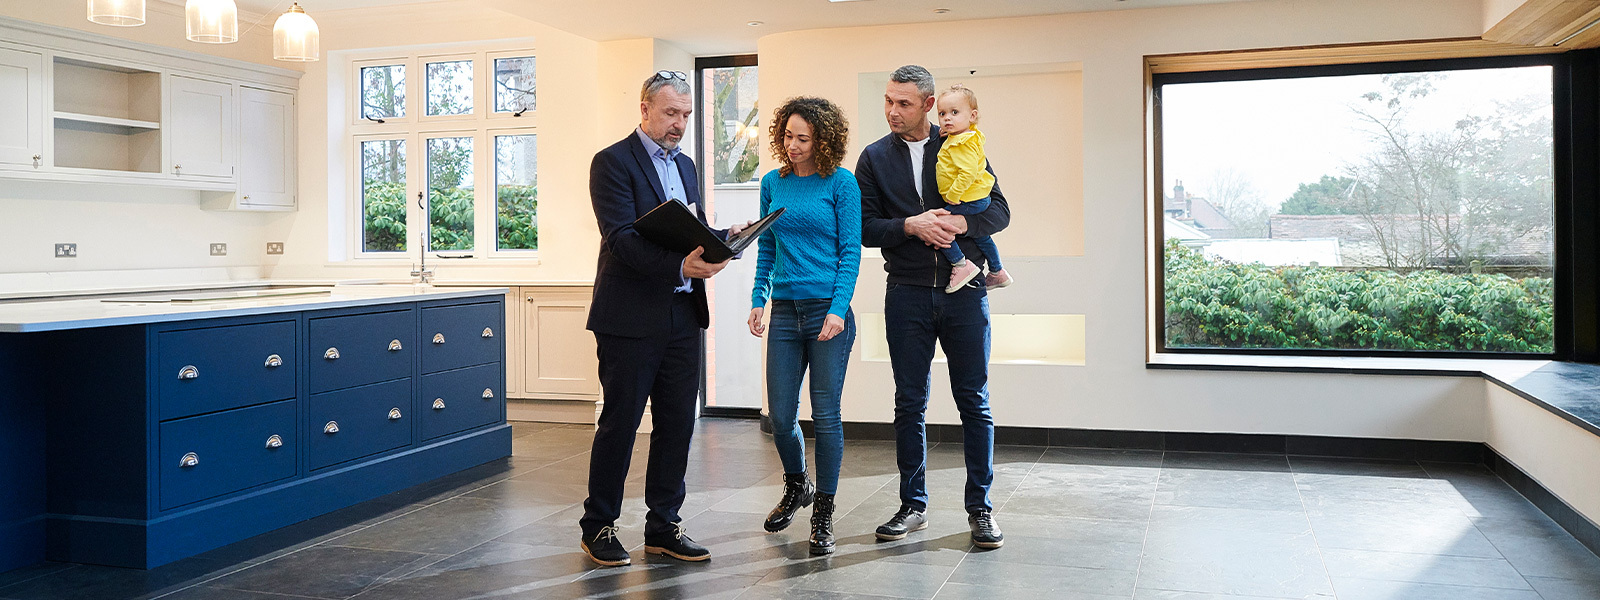 Real estate agent talking to a couple with a child at a home showing